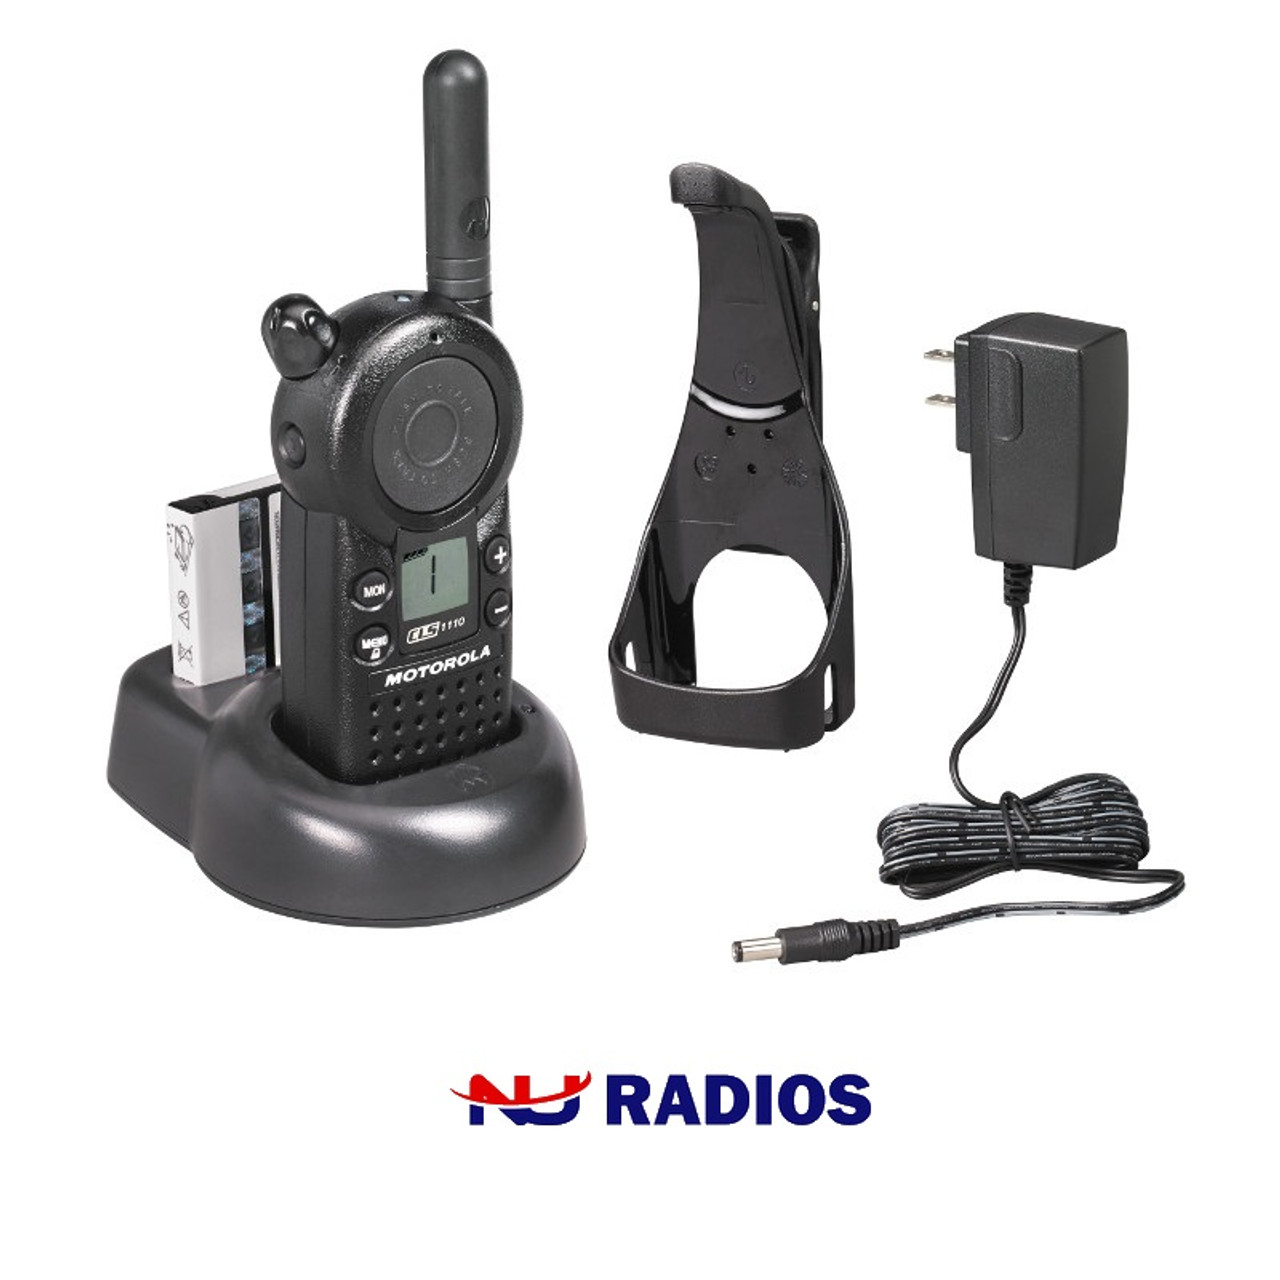 Set of Motorola CLS1110 Two Way Radio Chargers In Excellent Conditions